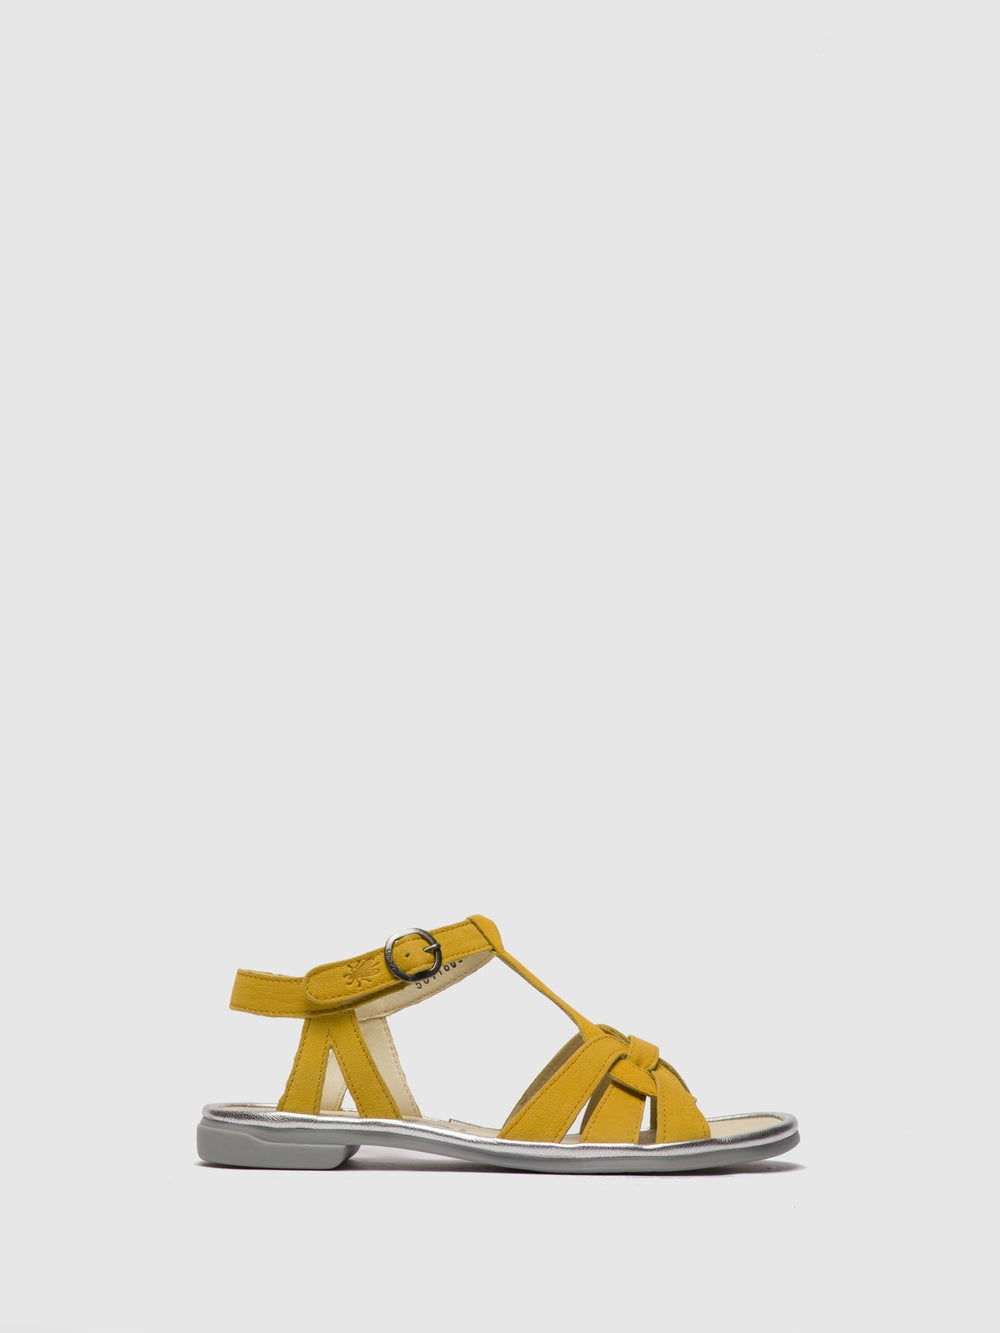 T-Strap Sandals COGE166FLY BRIGHT YELLOW/SILVER